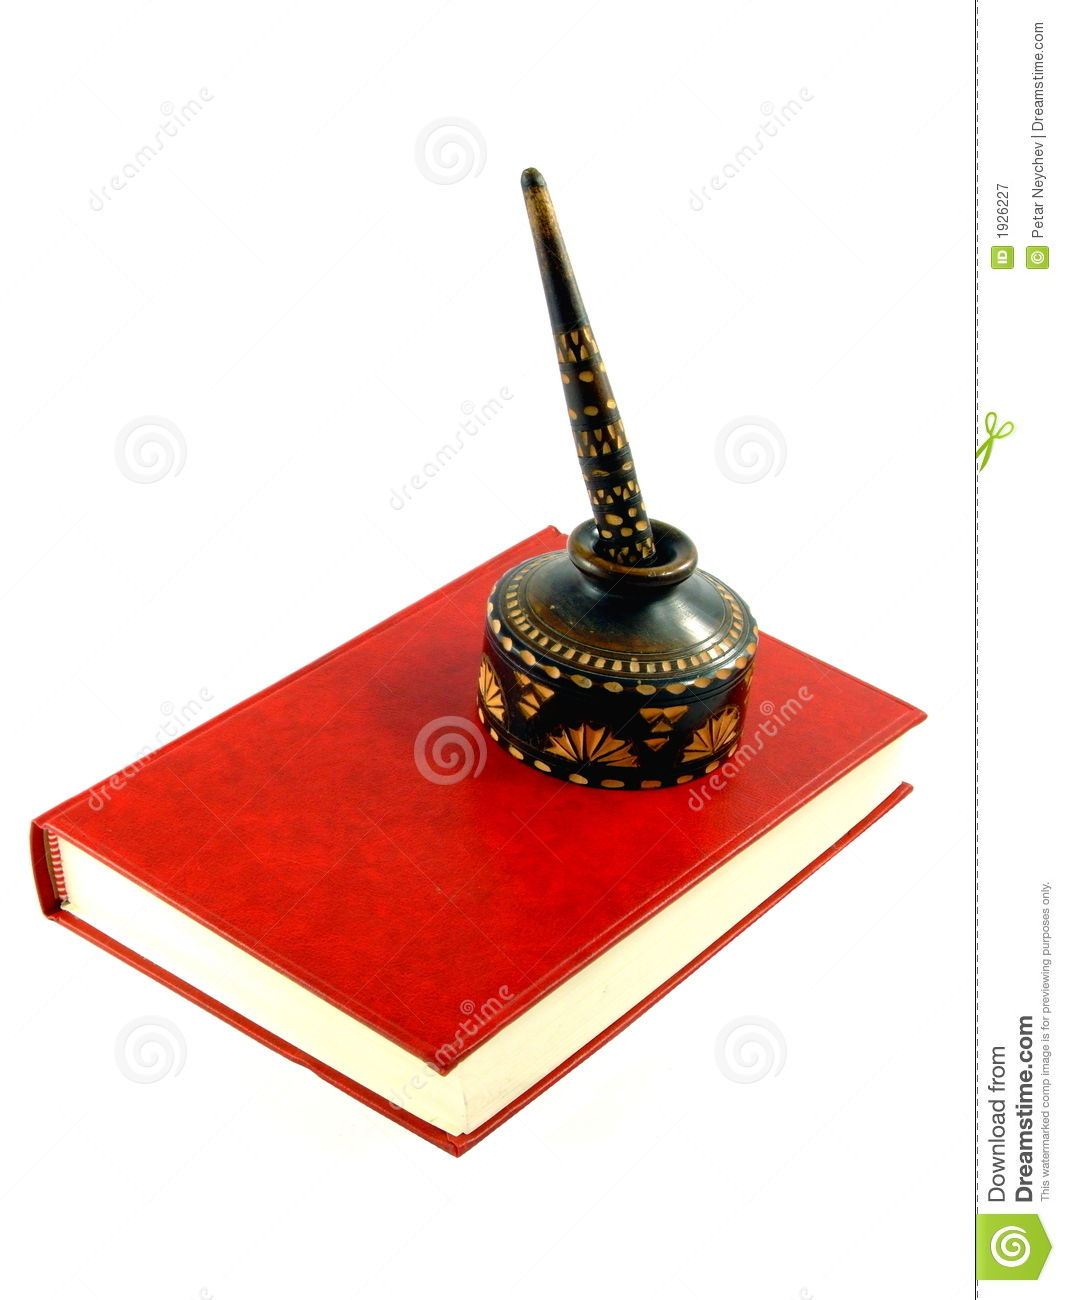 An Old Pen on a Red Book